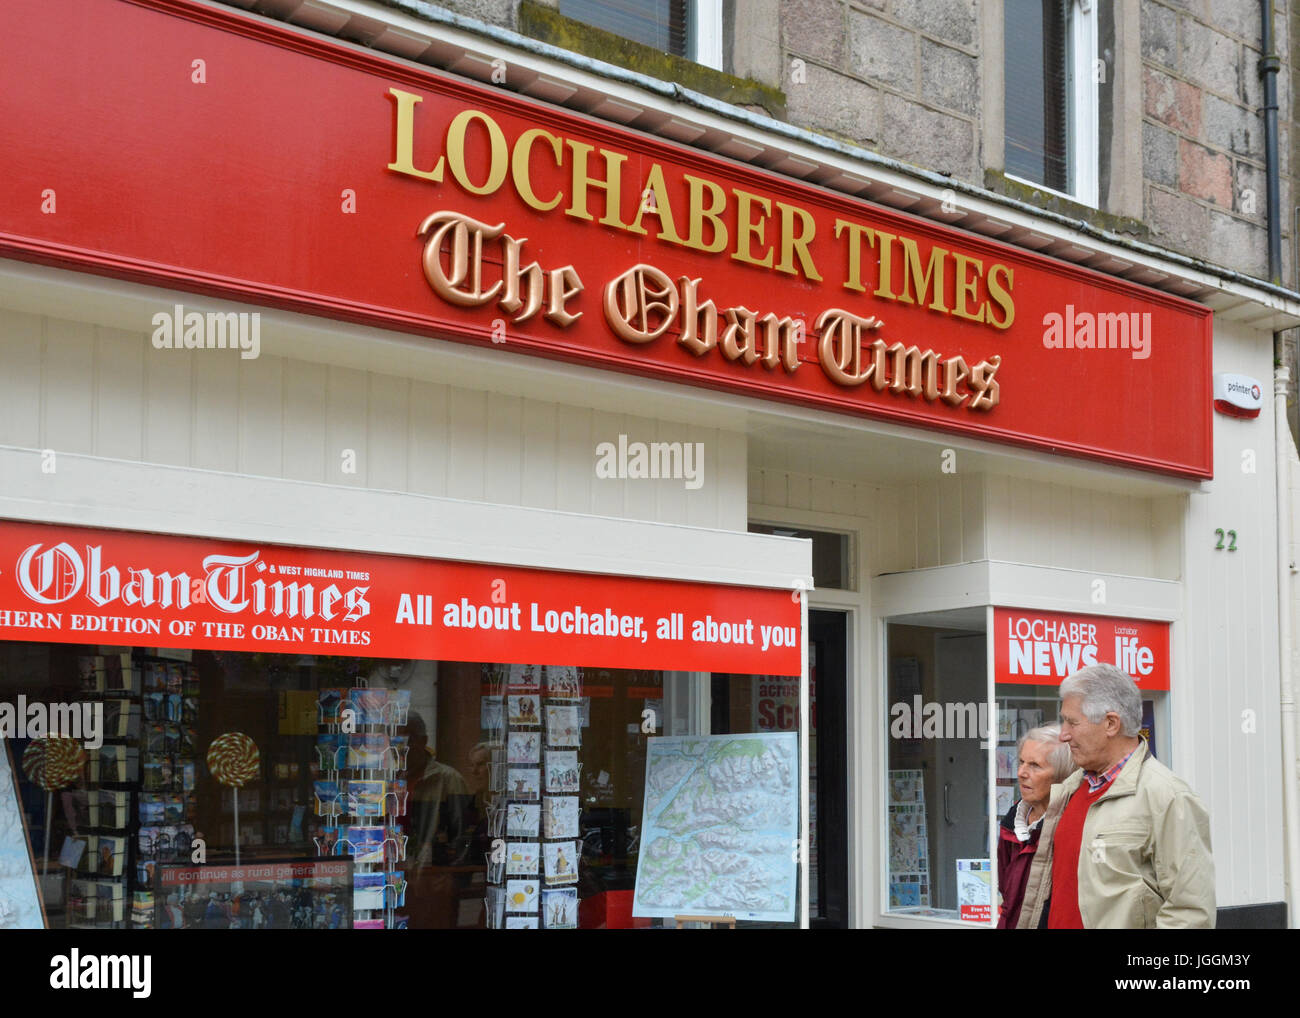 Lochaber Times and The Oban Times local newspapers shop, Fort William, Scotland, UK - Stock Image